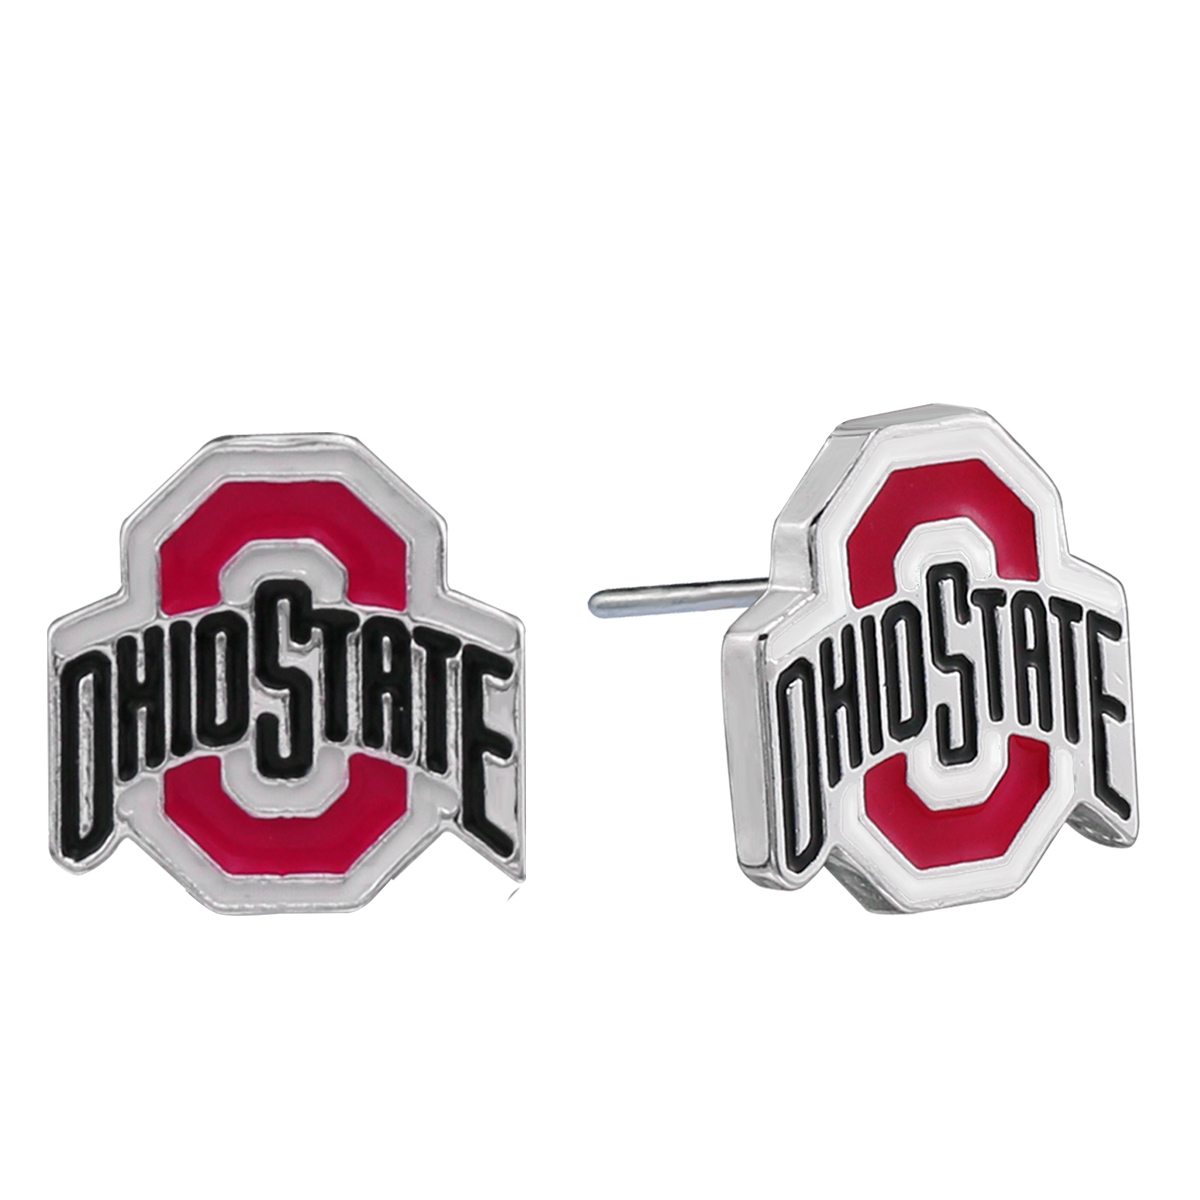 ohio state home decor.htm logo stud earrings ohio state university buckeyes  logo stud earrings ohio state